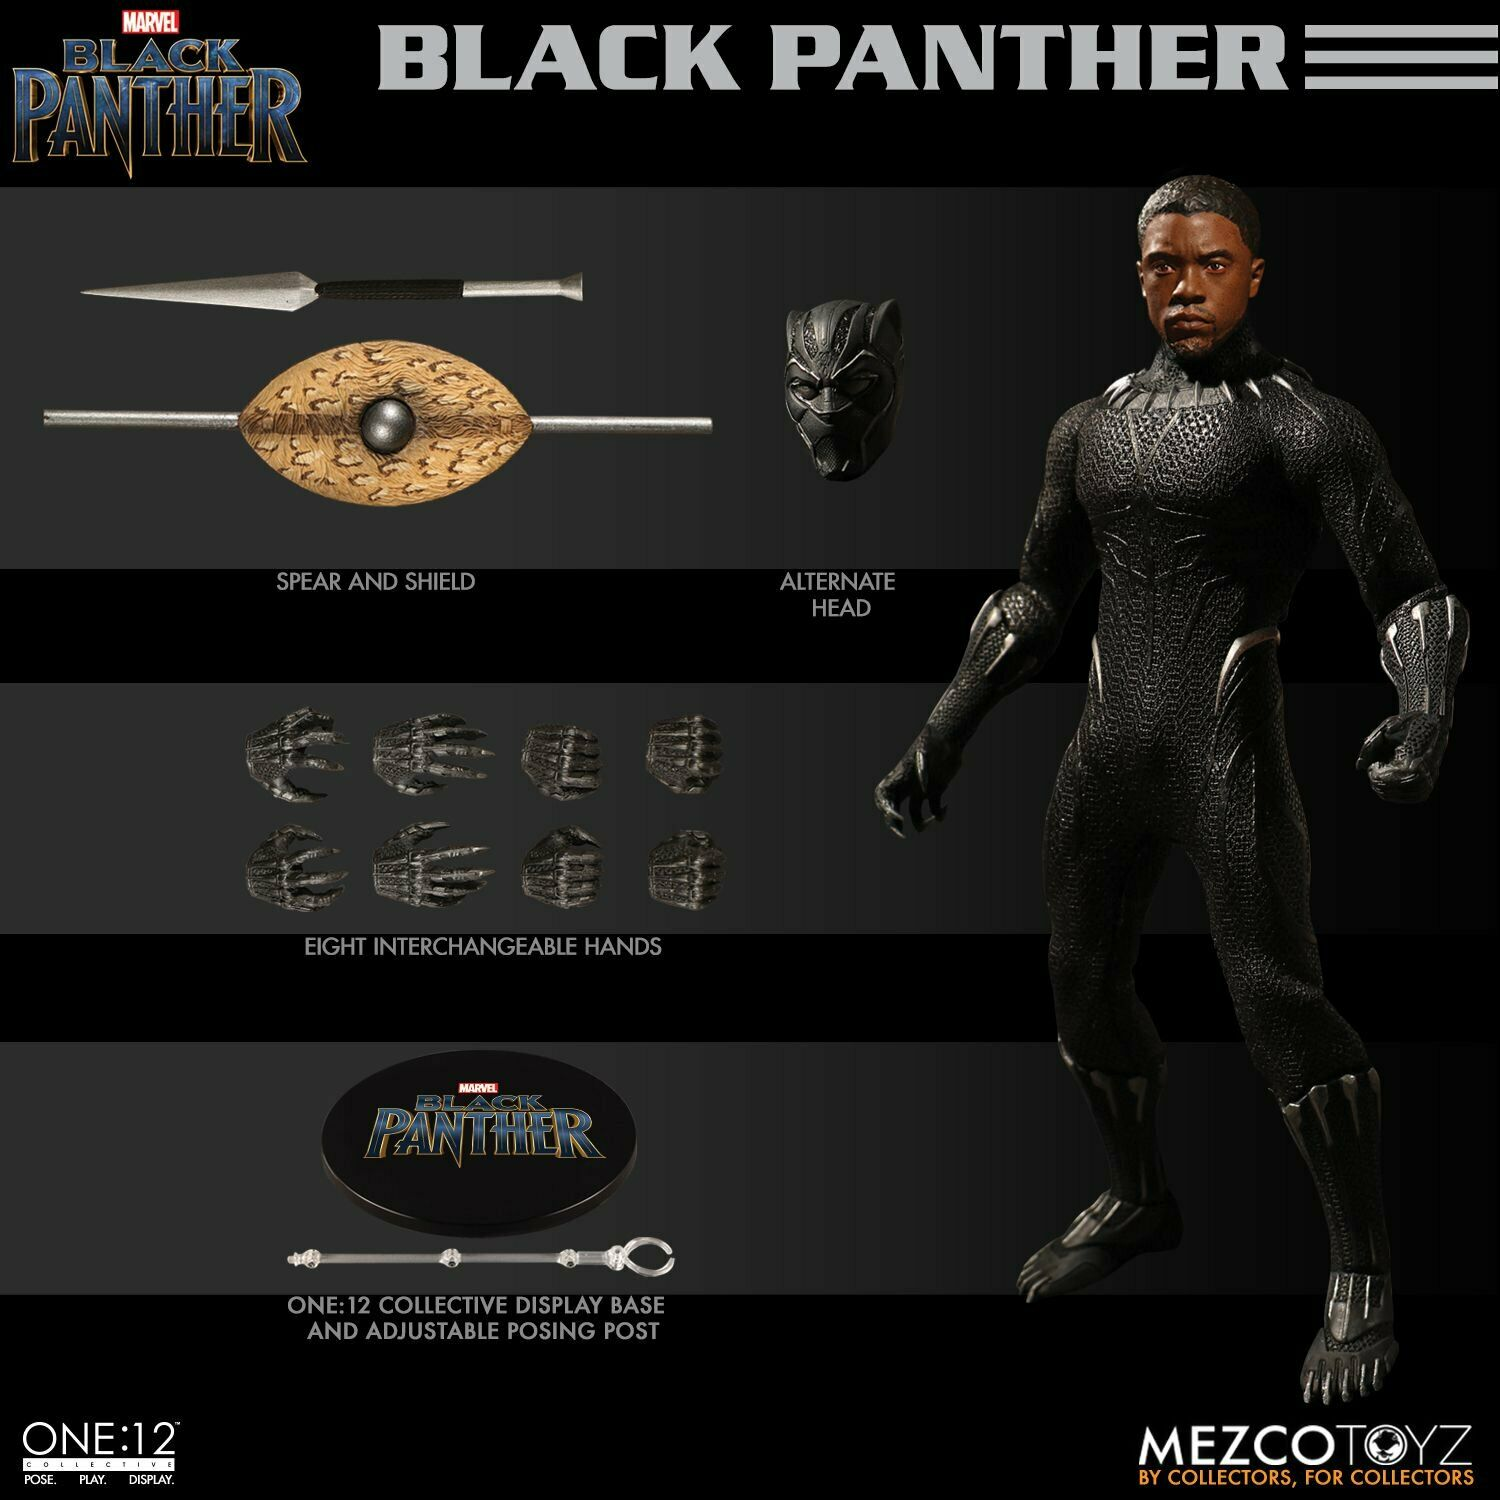 One 12 Collective Marvel schwarz Panther 1 12th Scale Figure Mezco IN STOCK